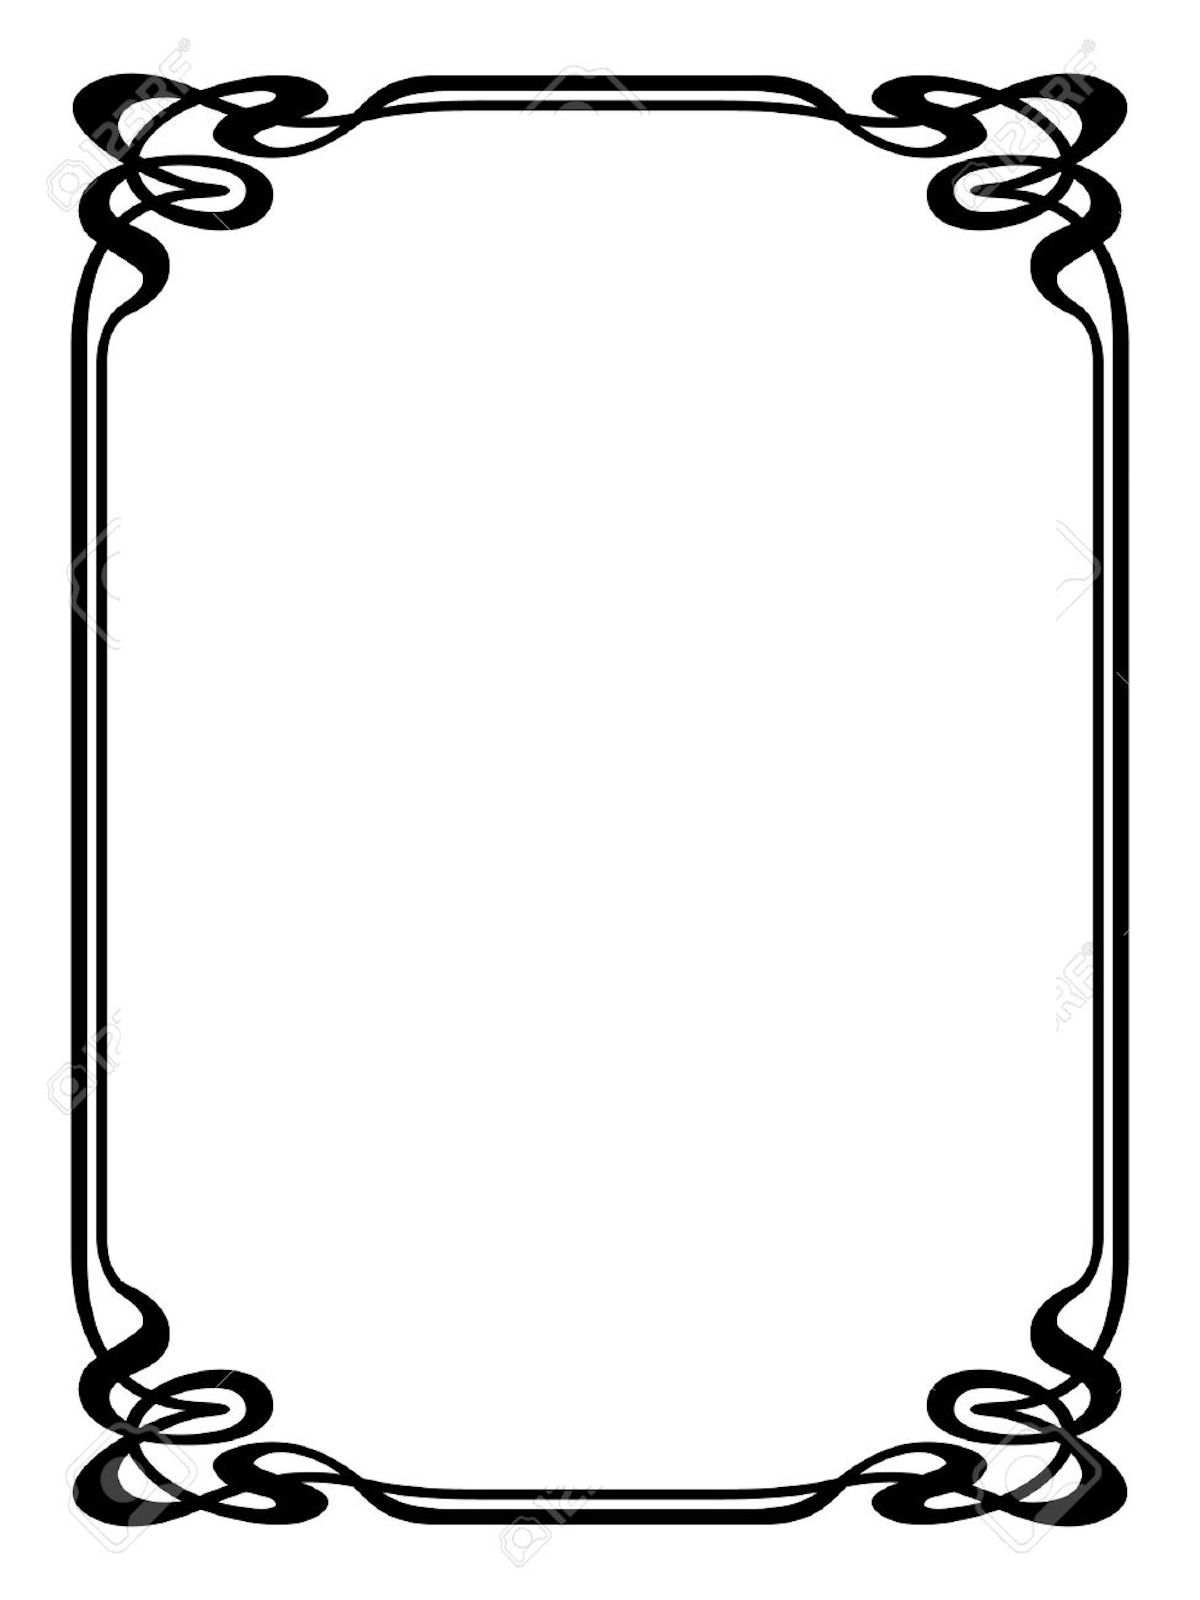 Pin Letters Toover Clip Art Borders Border Pages Book Free Play - Book  Frame Clipart – Stunning free transparent png clipart images free download